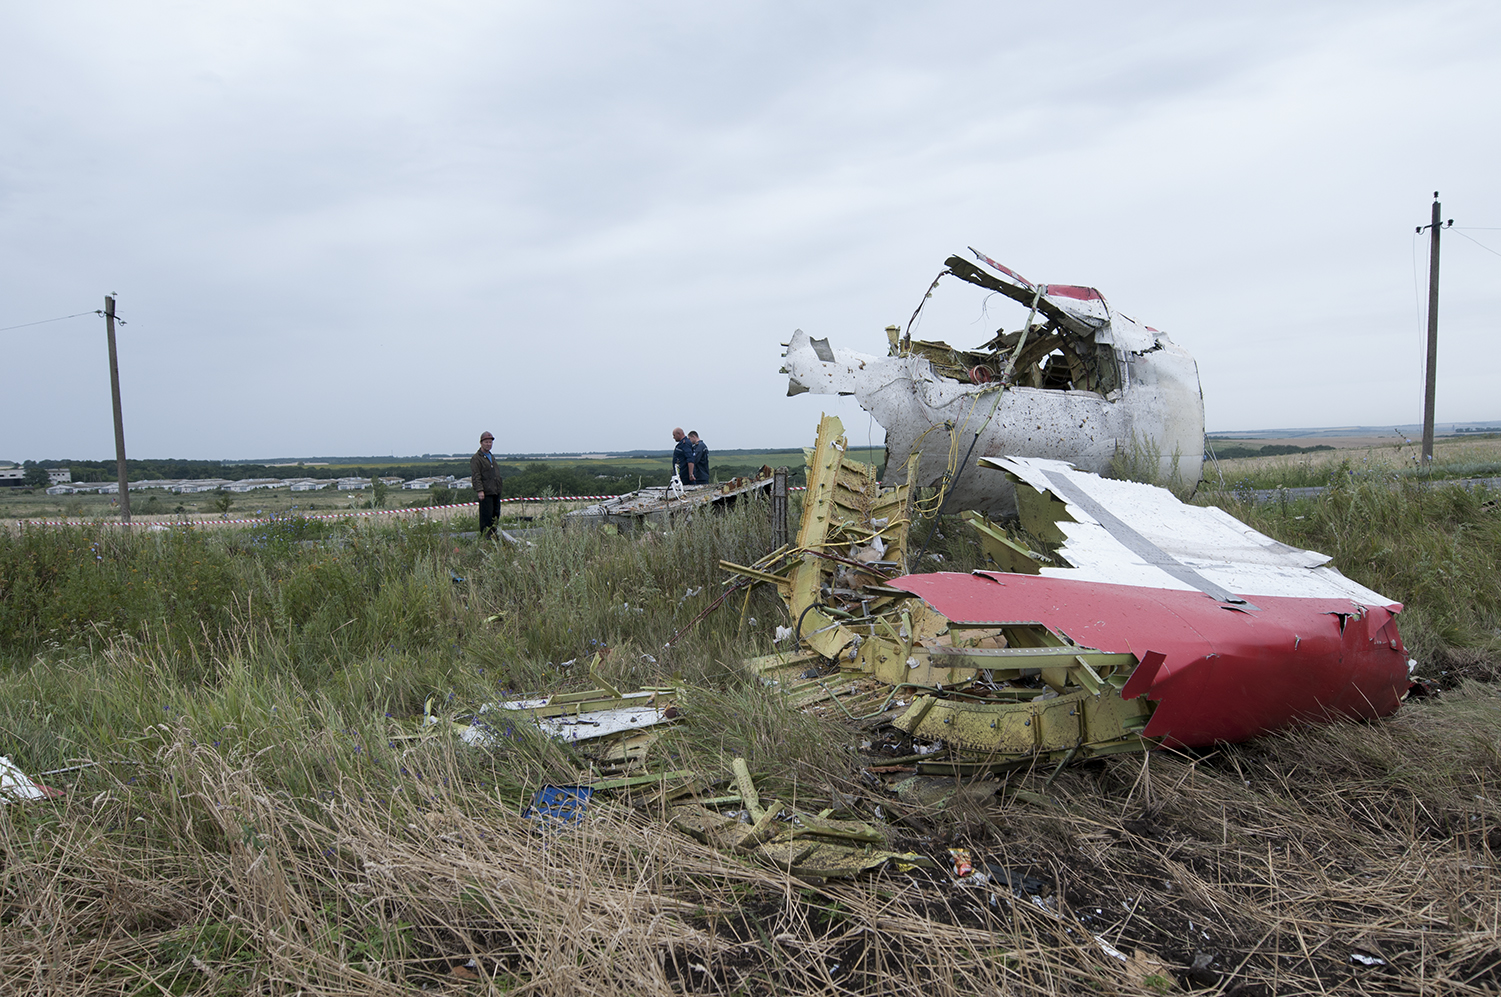 Civilians near a part of the fuselage belonging to the Boeing-777 which got shot down the 17th of July during the afternoon. The aircraft was carrying 298 people, including 15 crew members.